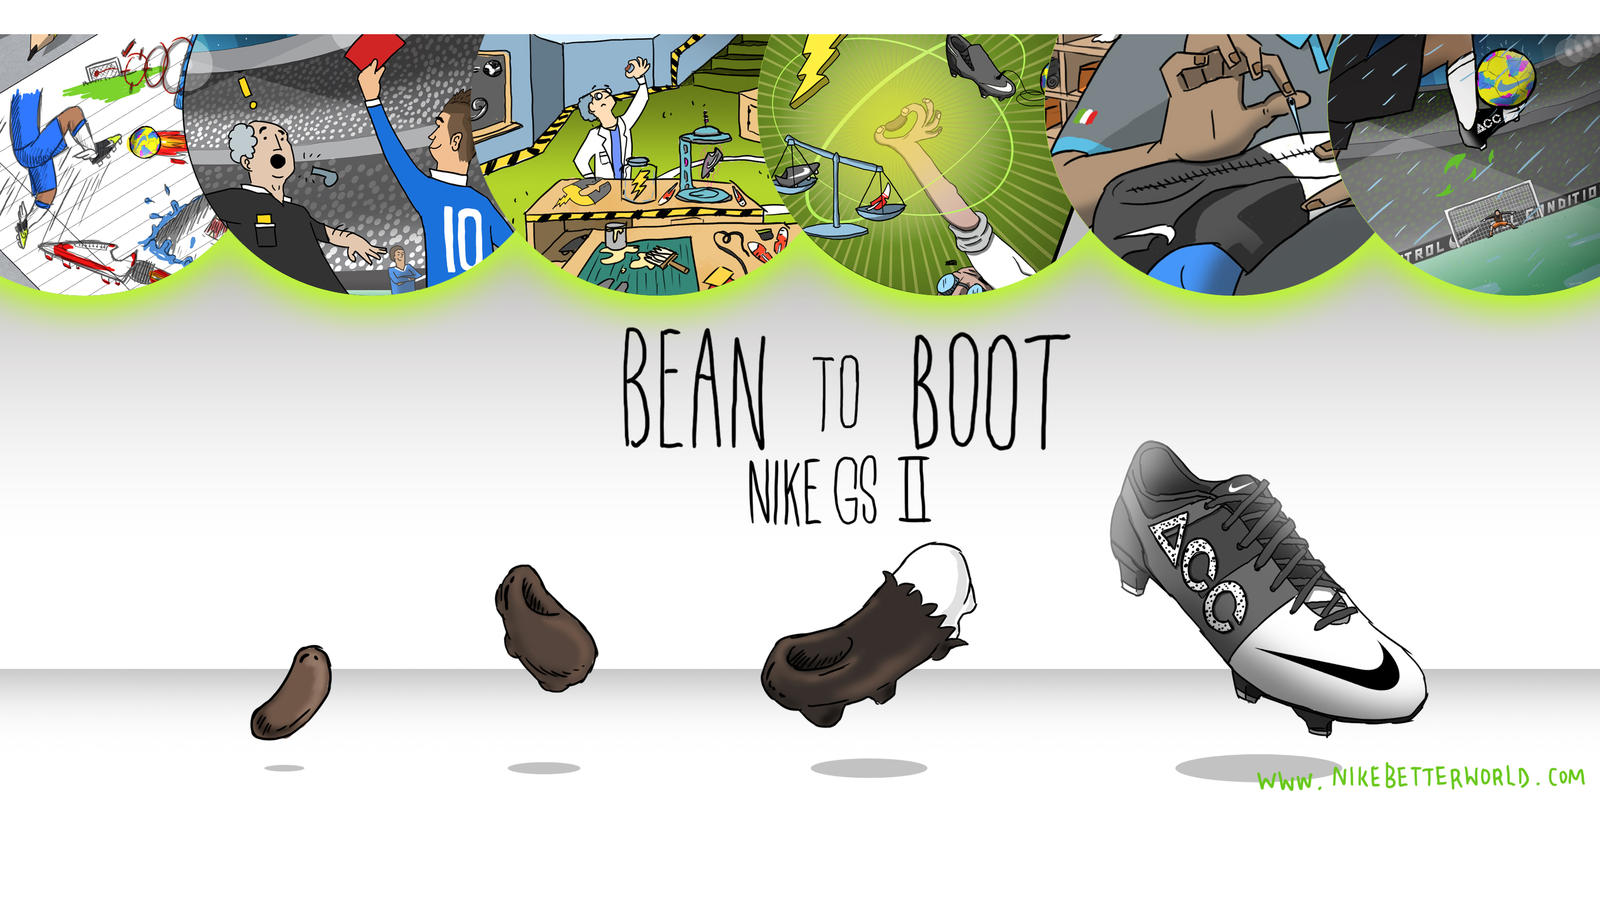 1-Nike_Bean_To_Boot_GSII